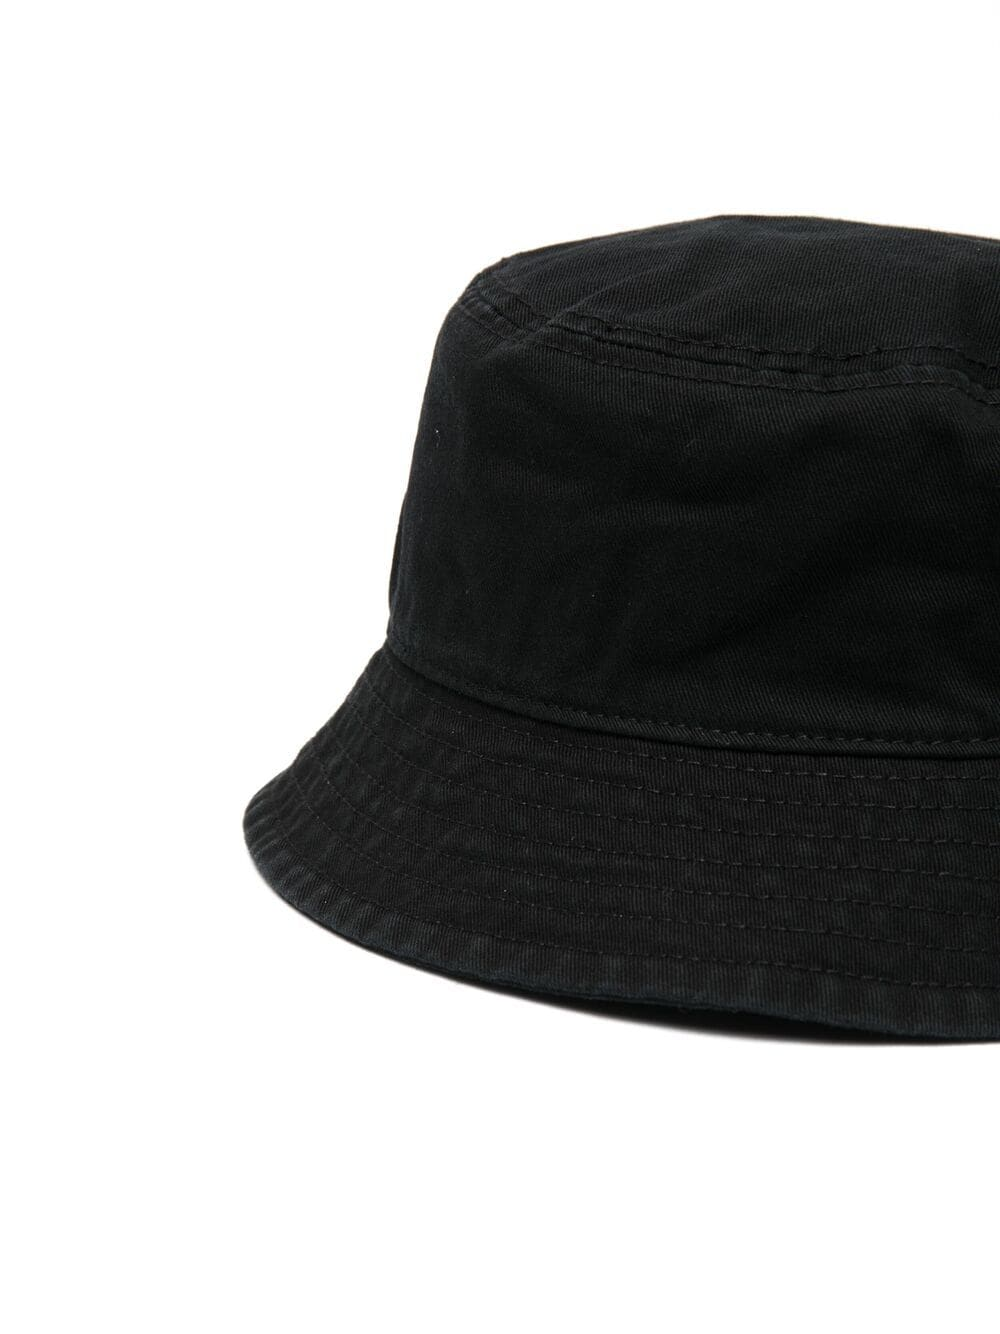 PALM ANGELS Miami Embroidered Bucket Hat